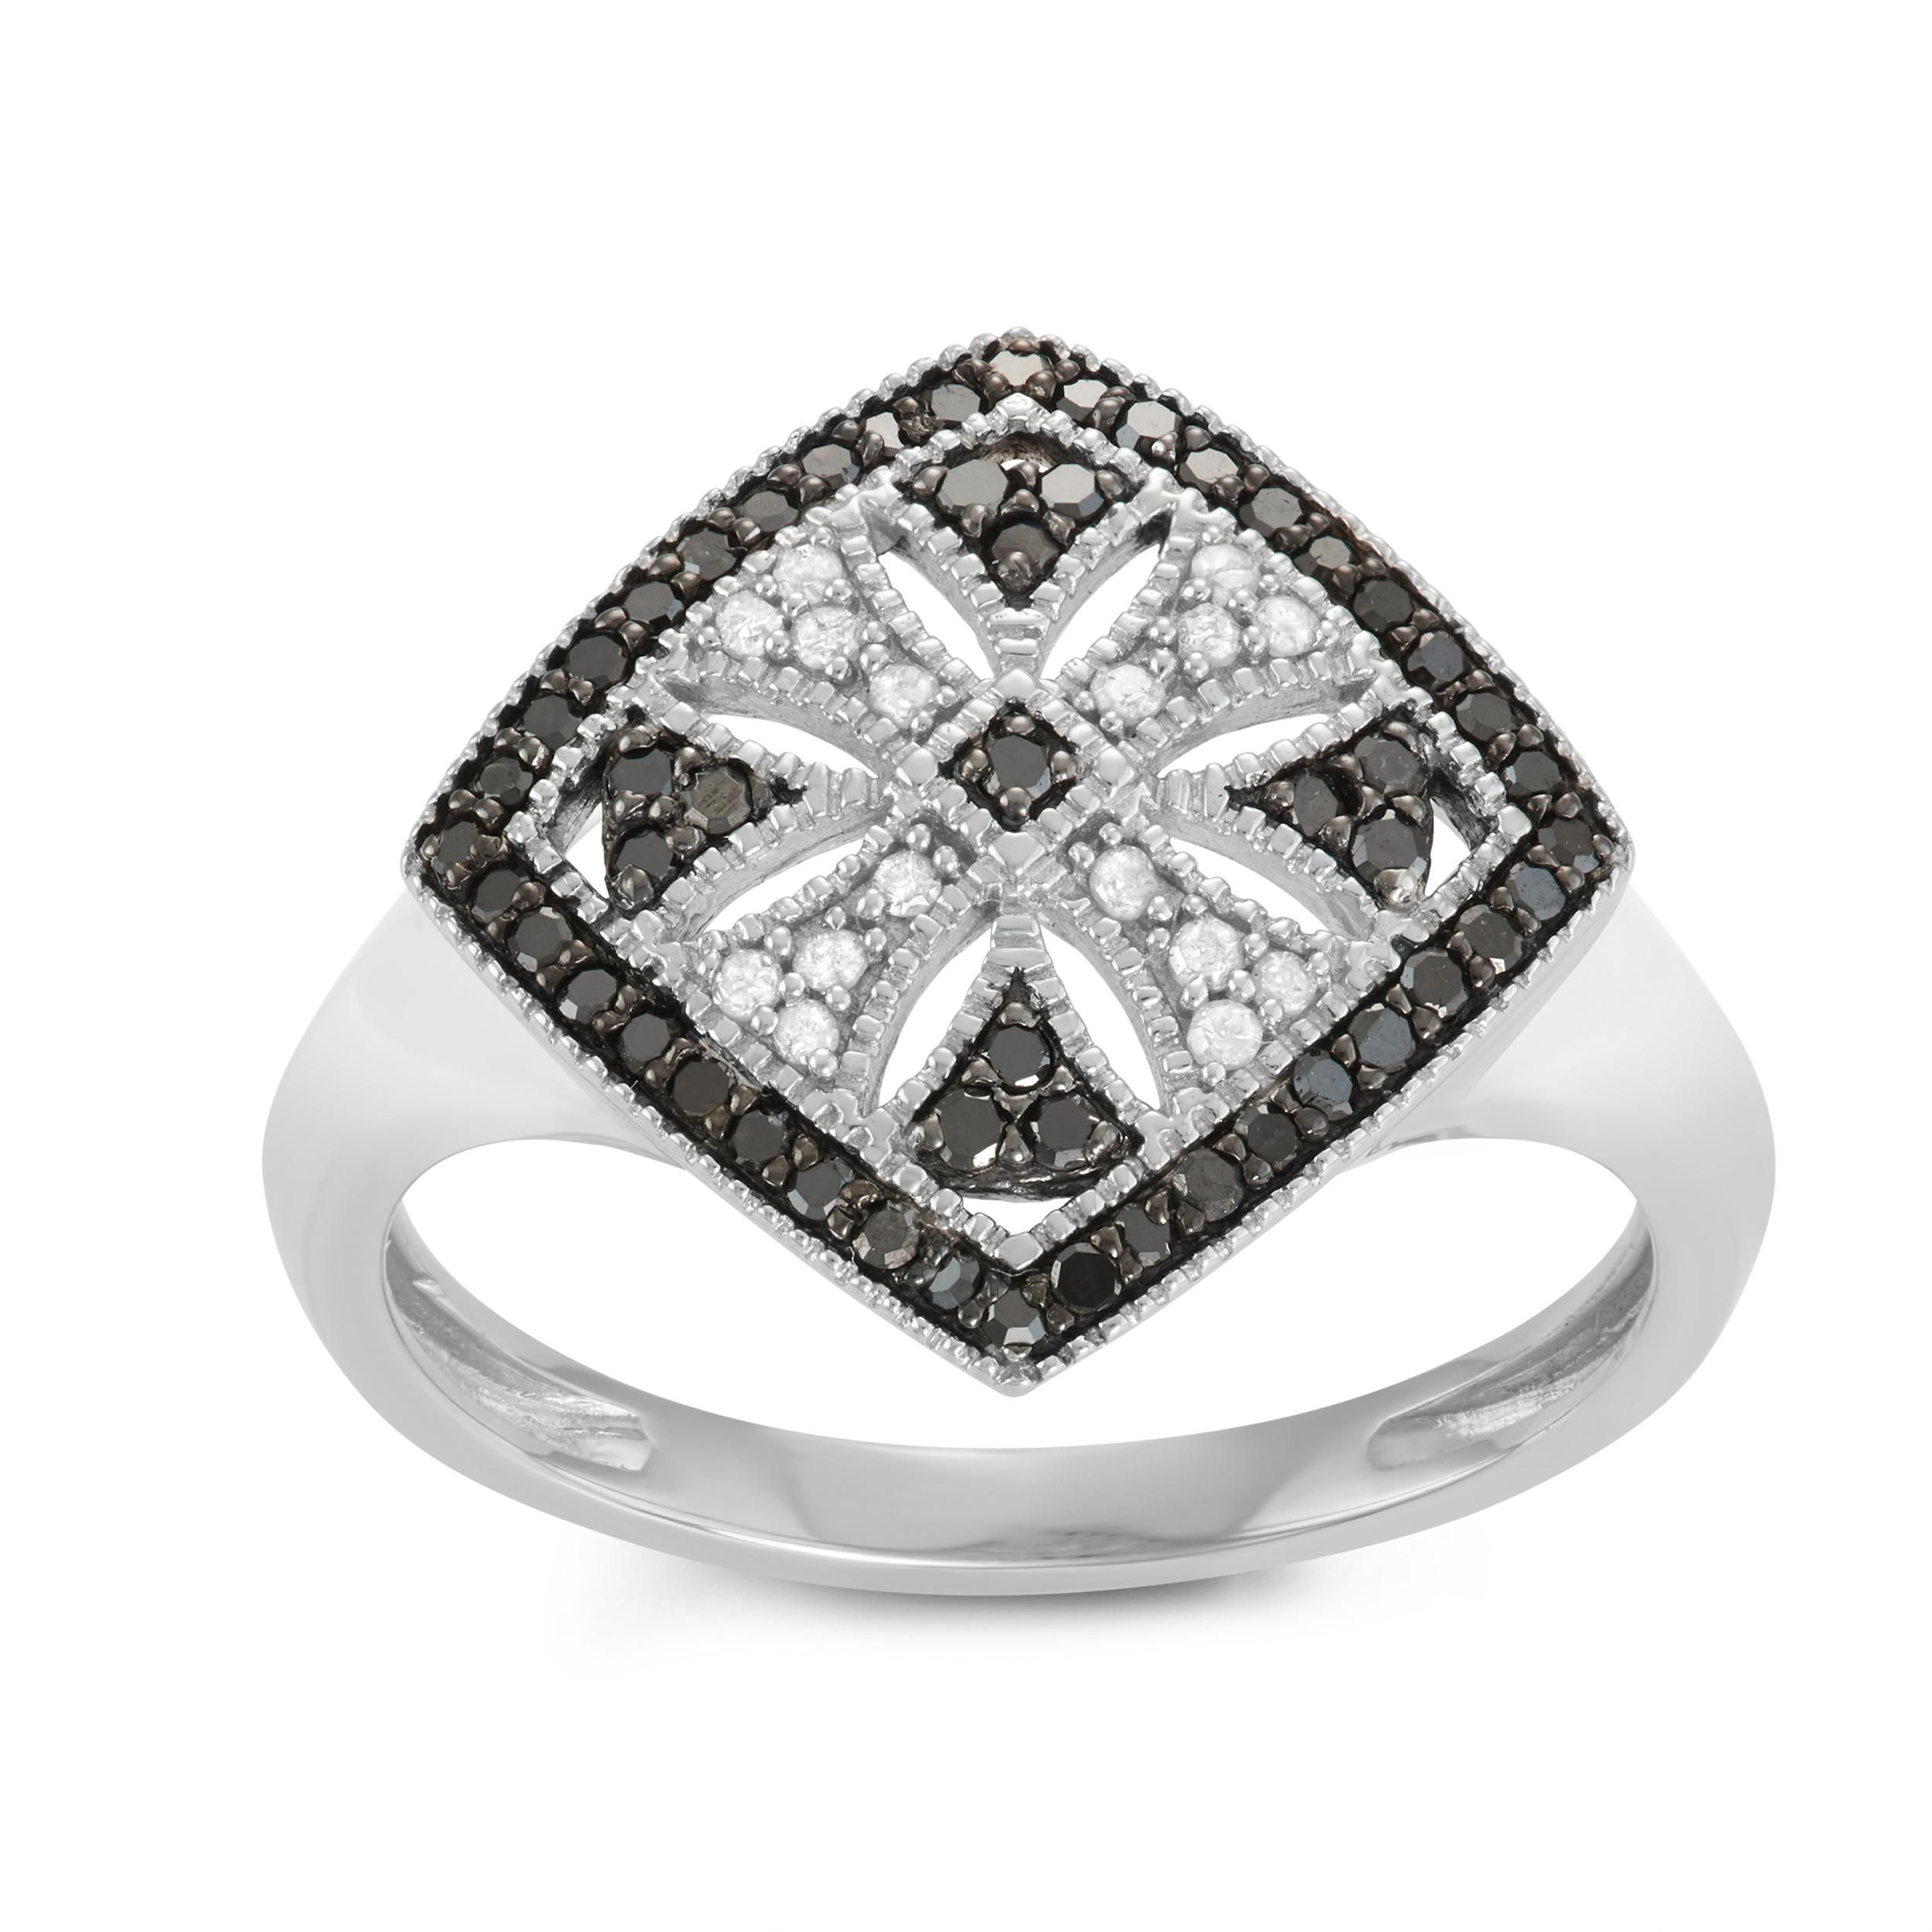 Journee Collection Sterling Silver 3/4 CT TDW Black and Diamond Micropave Square Ring, Women's